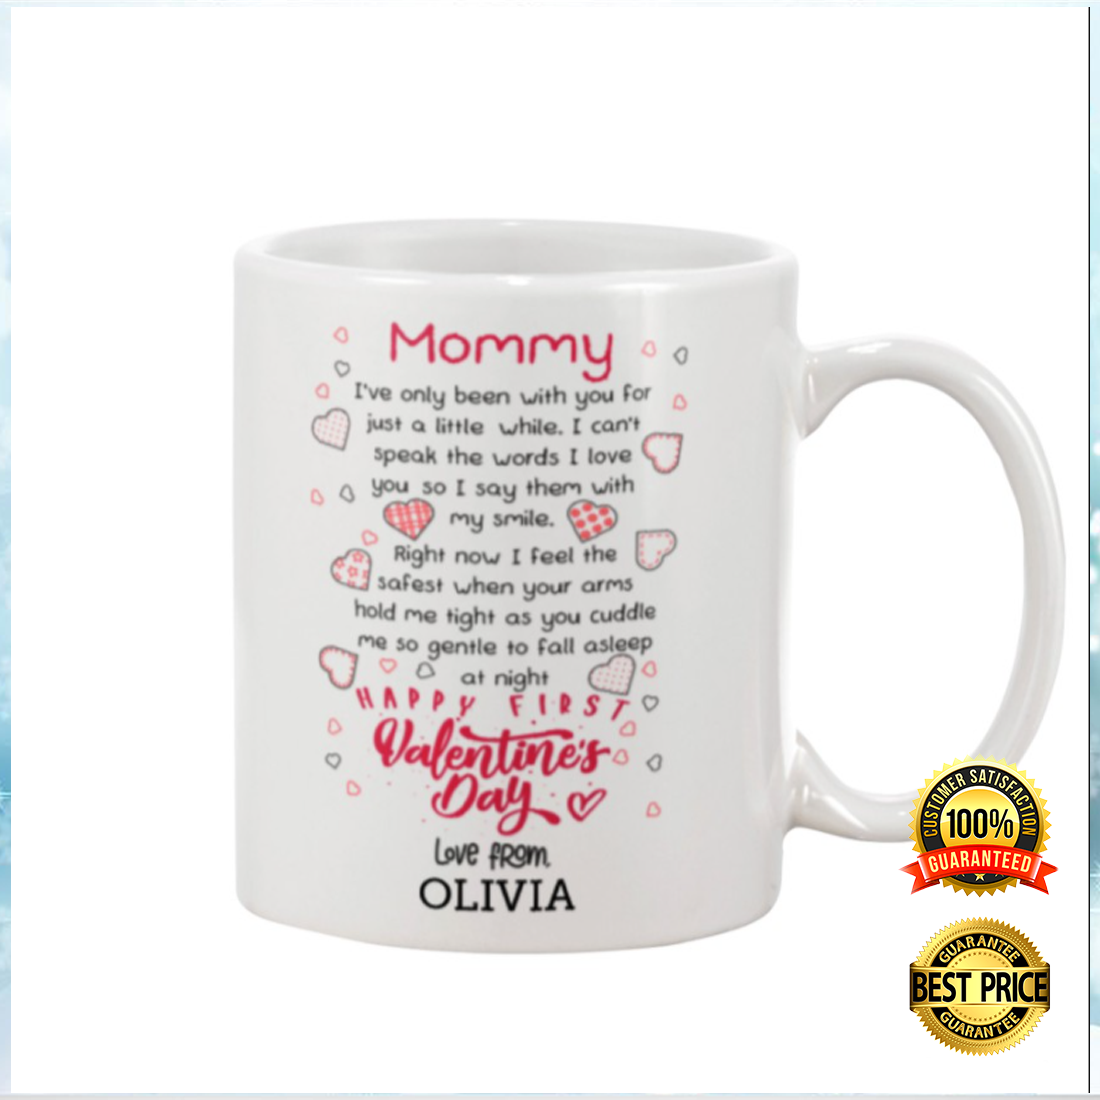 Personalized mommy Happy first valentine's day mug 2